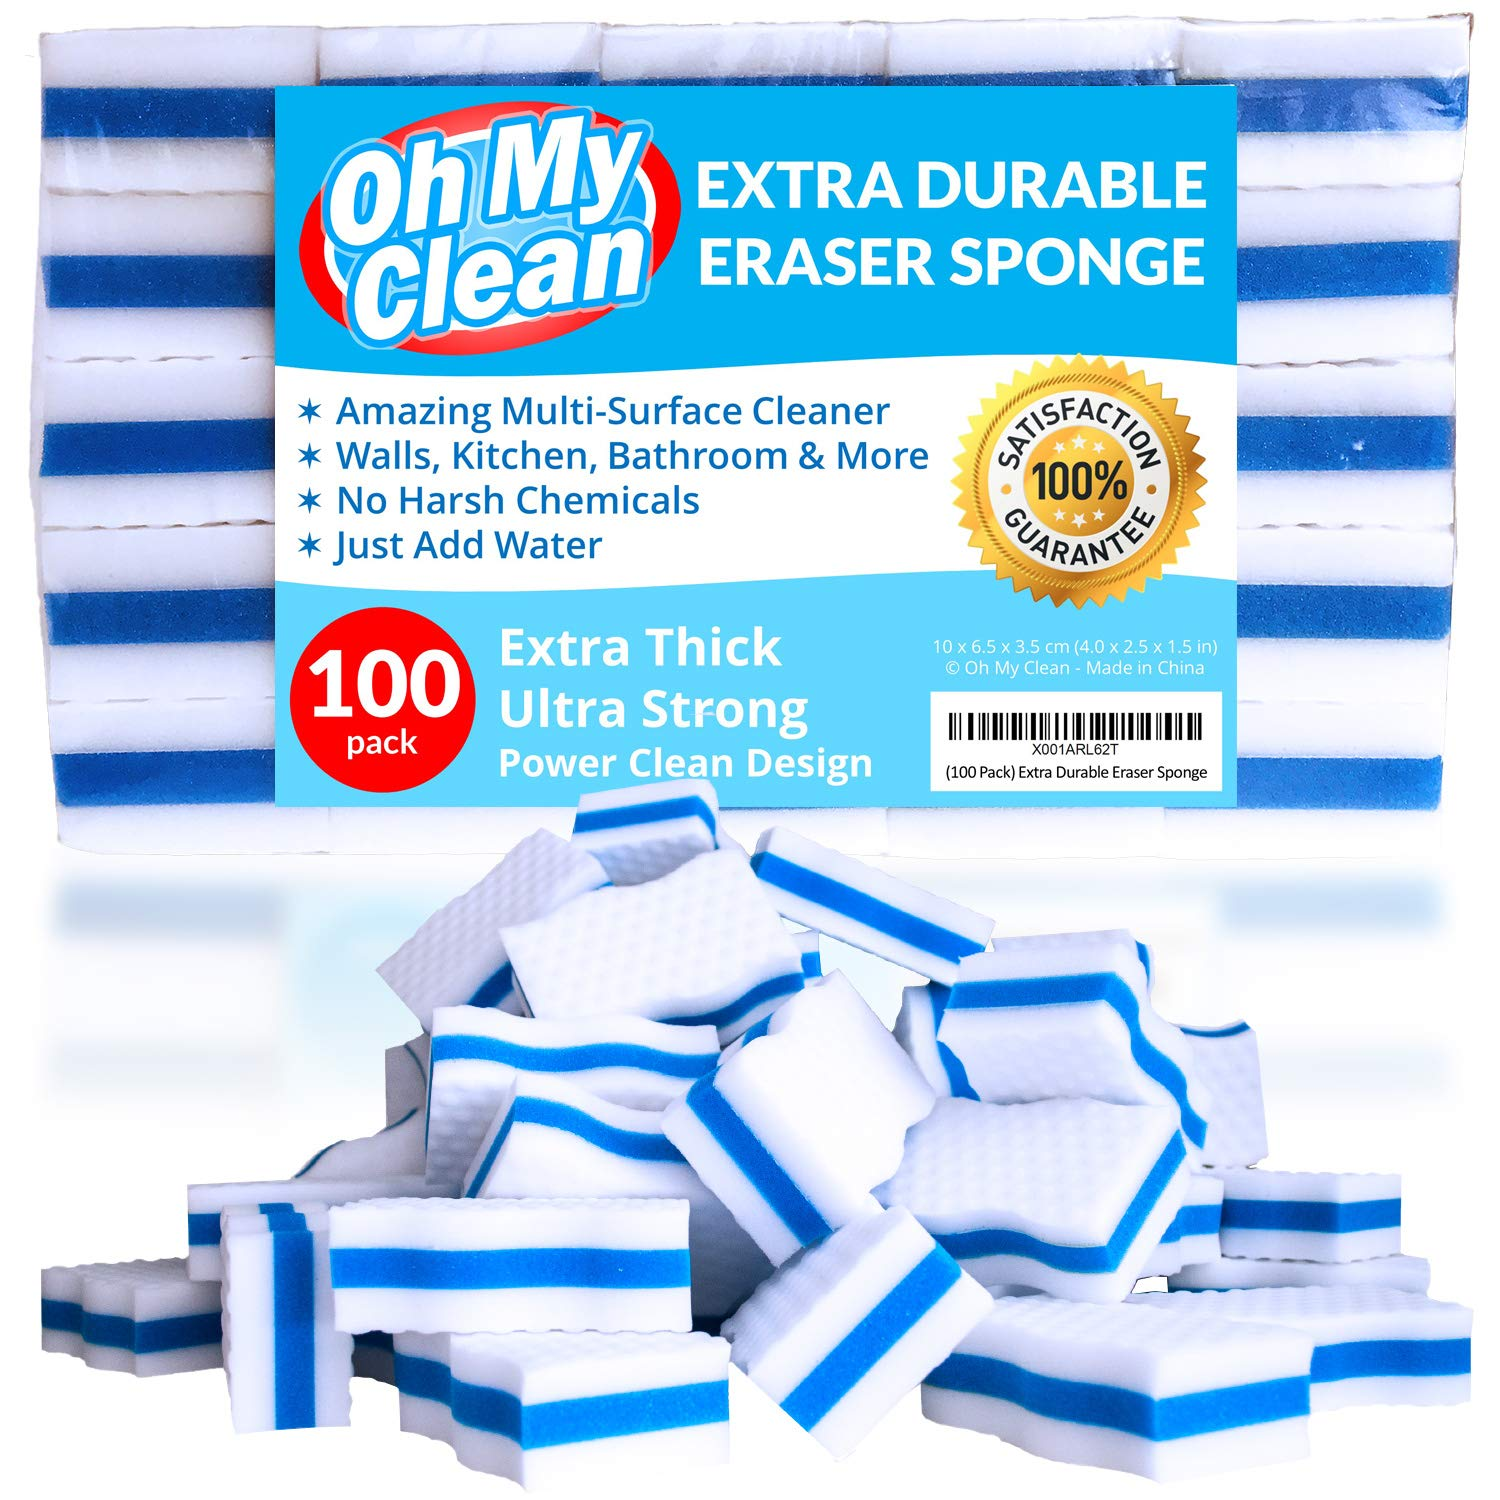 (100 Pack) Extra Durable Eraser Sponge - Extra Thick, Long Lasting, Premium Melamine Sponges in Bulk - Multi-Purpose Power Scrubber - Bathroom, Kitchen, Floor, Bathtub, Toilet, Baseboard, Wall Cleaner by Oh My Clean